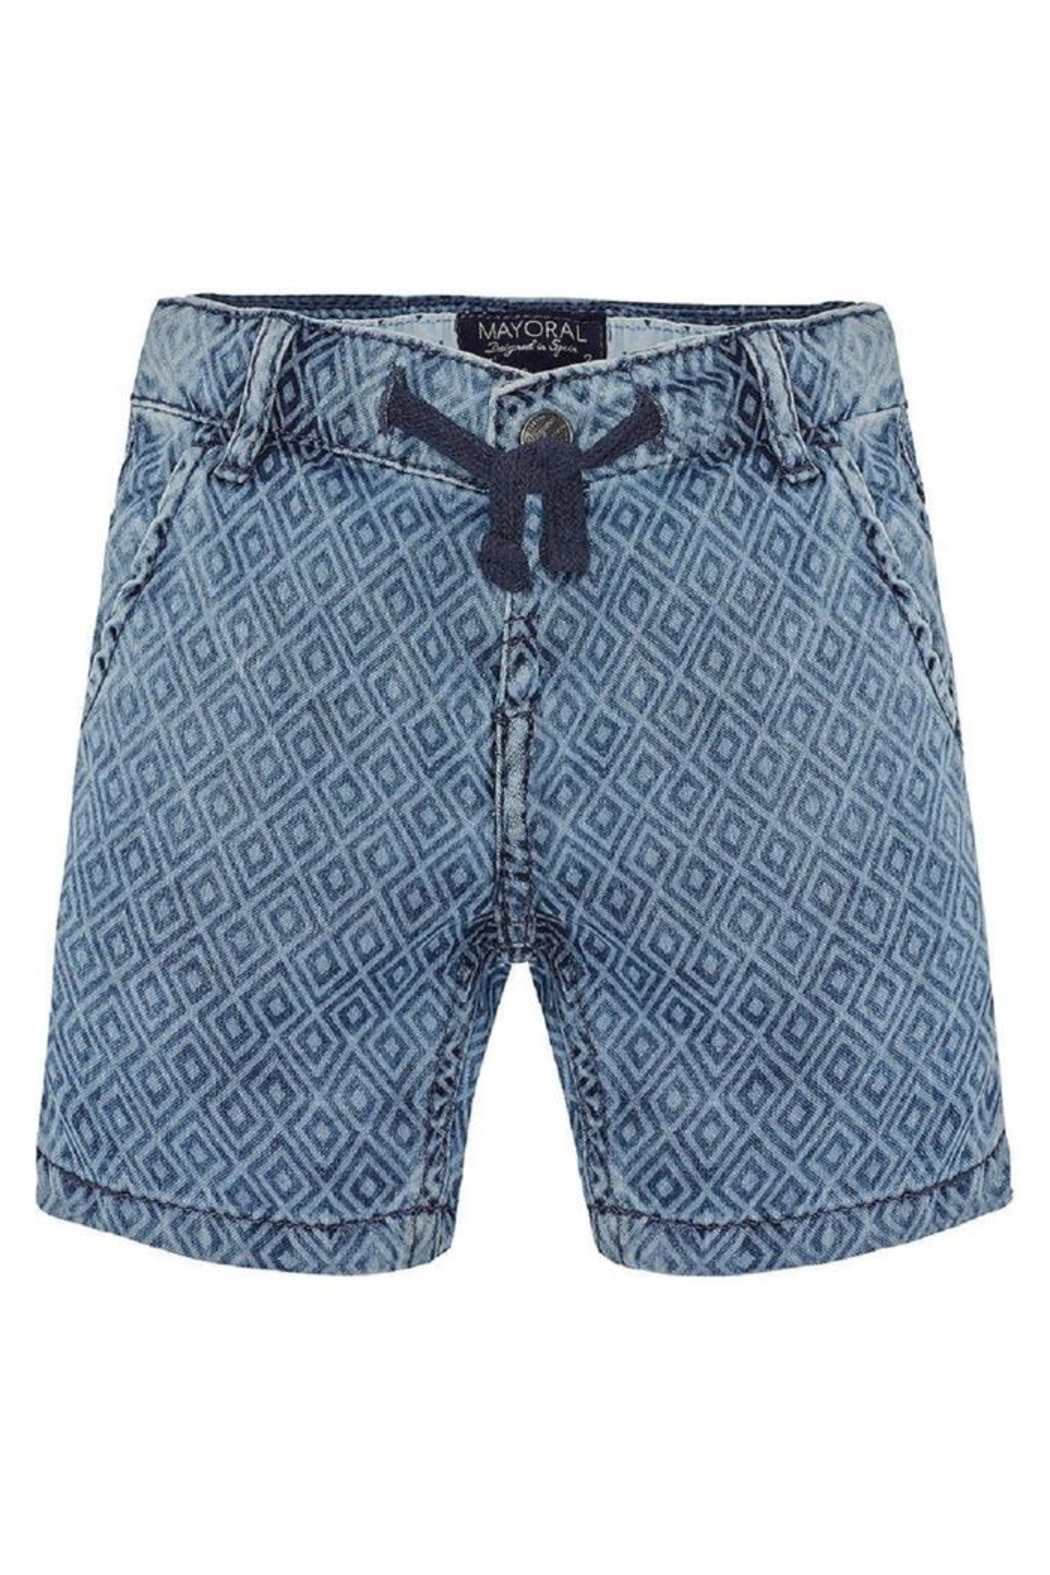 Mayoral Printed Denim Short - Main Image